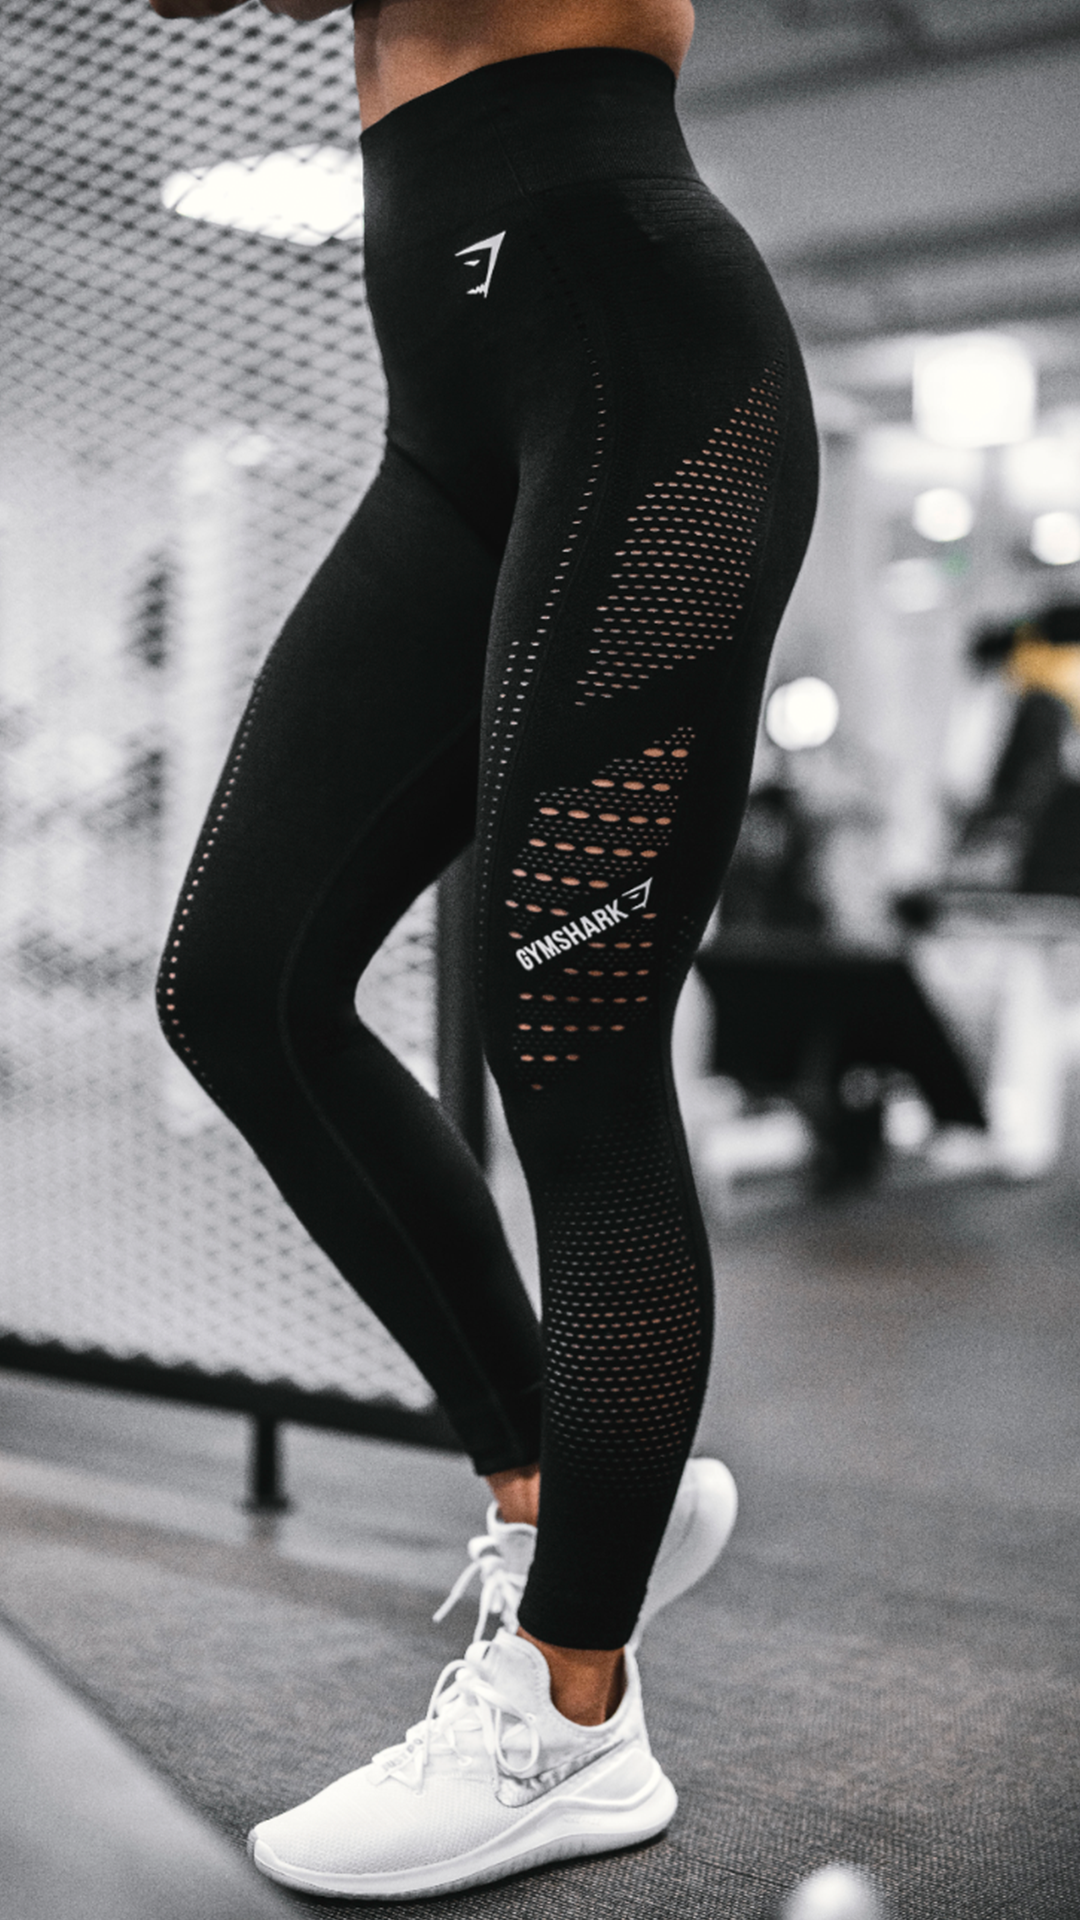 646738ba3e1b9 The Flawless Knit Leggings, Black. A fresh look for your staple workout  favourite. #Gymshark #Gym #Sweat #Train #Perform #Exercise #Strength  #Strong #Power ...